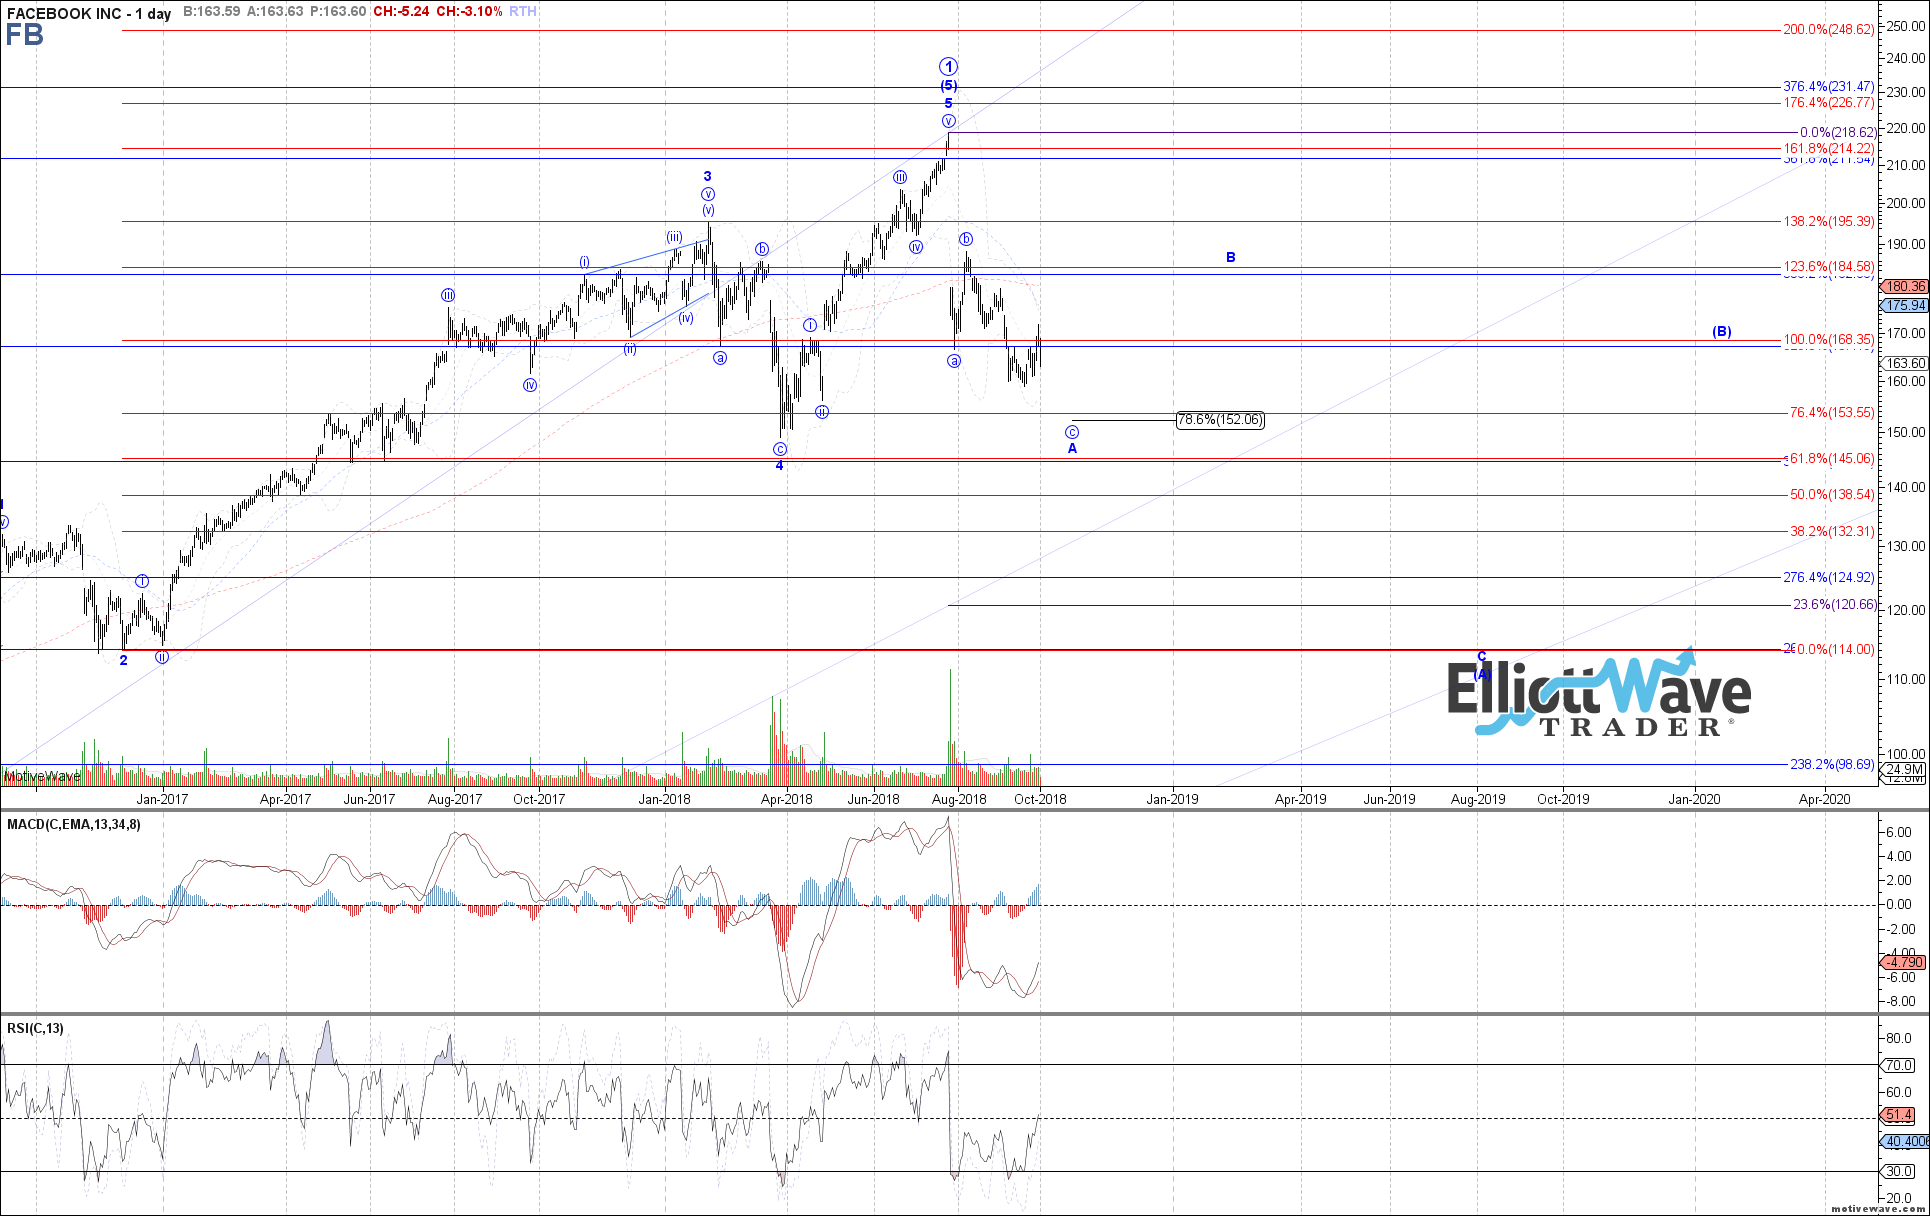 FB - Primary Analysis - Sep-28 0959 AM (1 day)